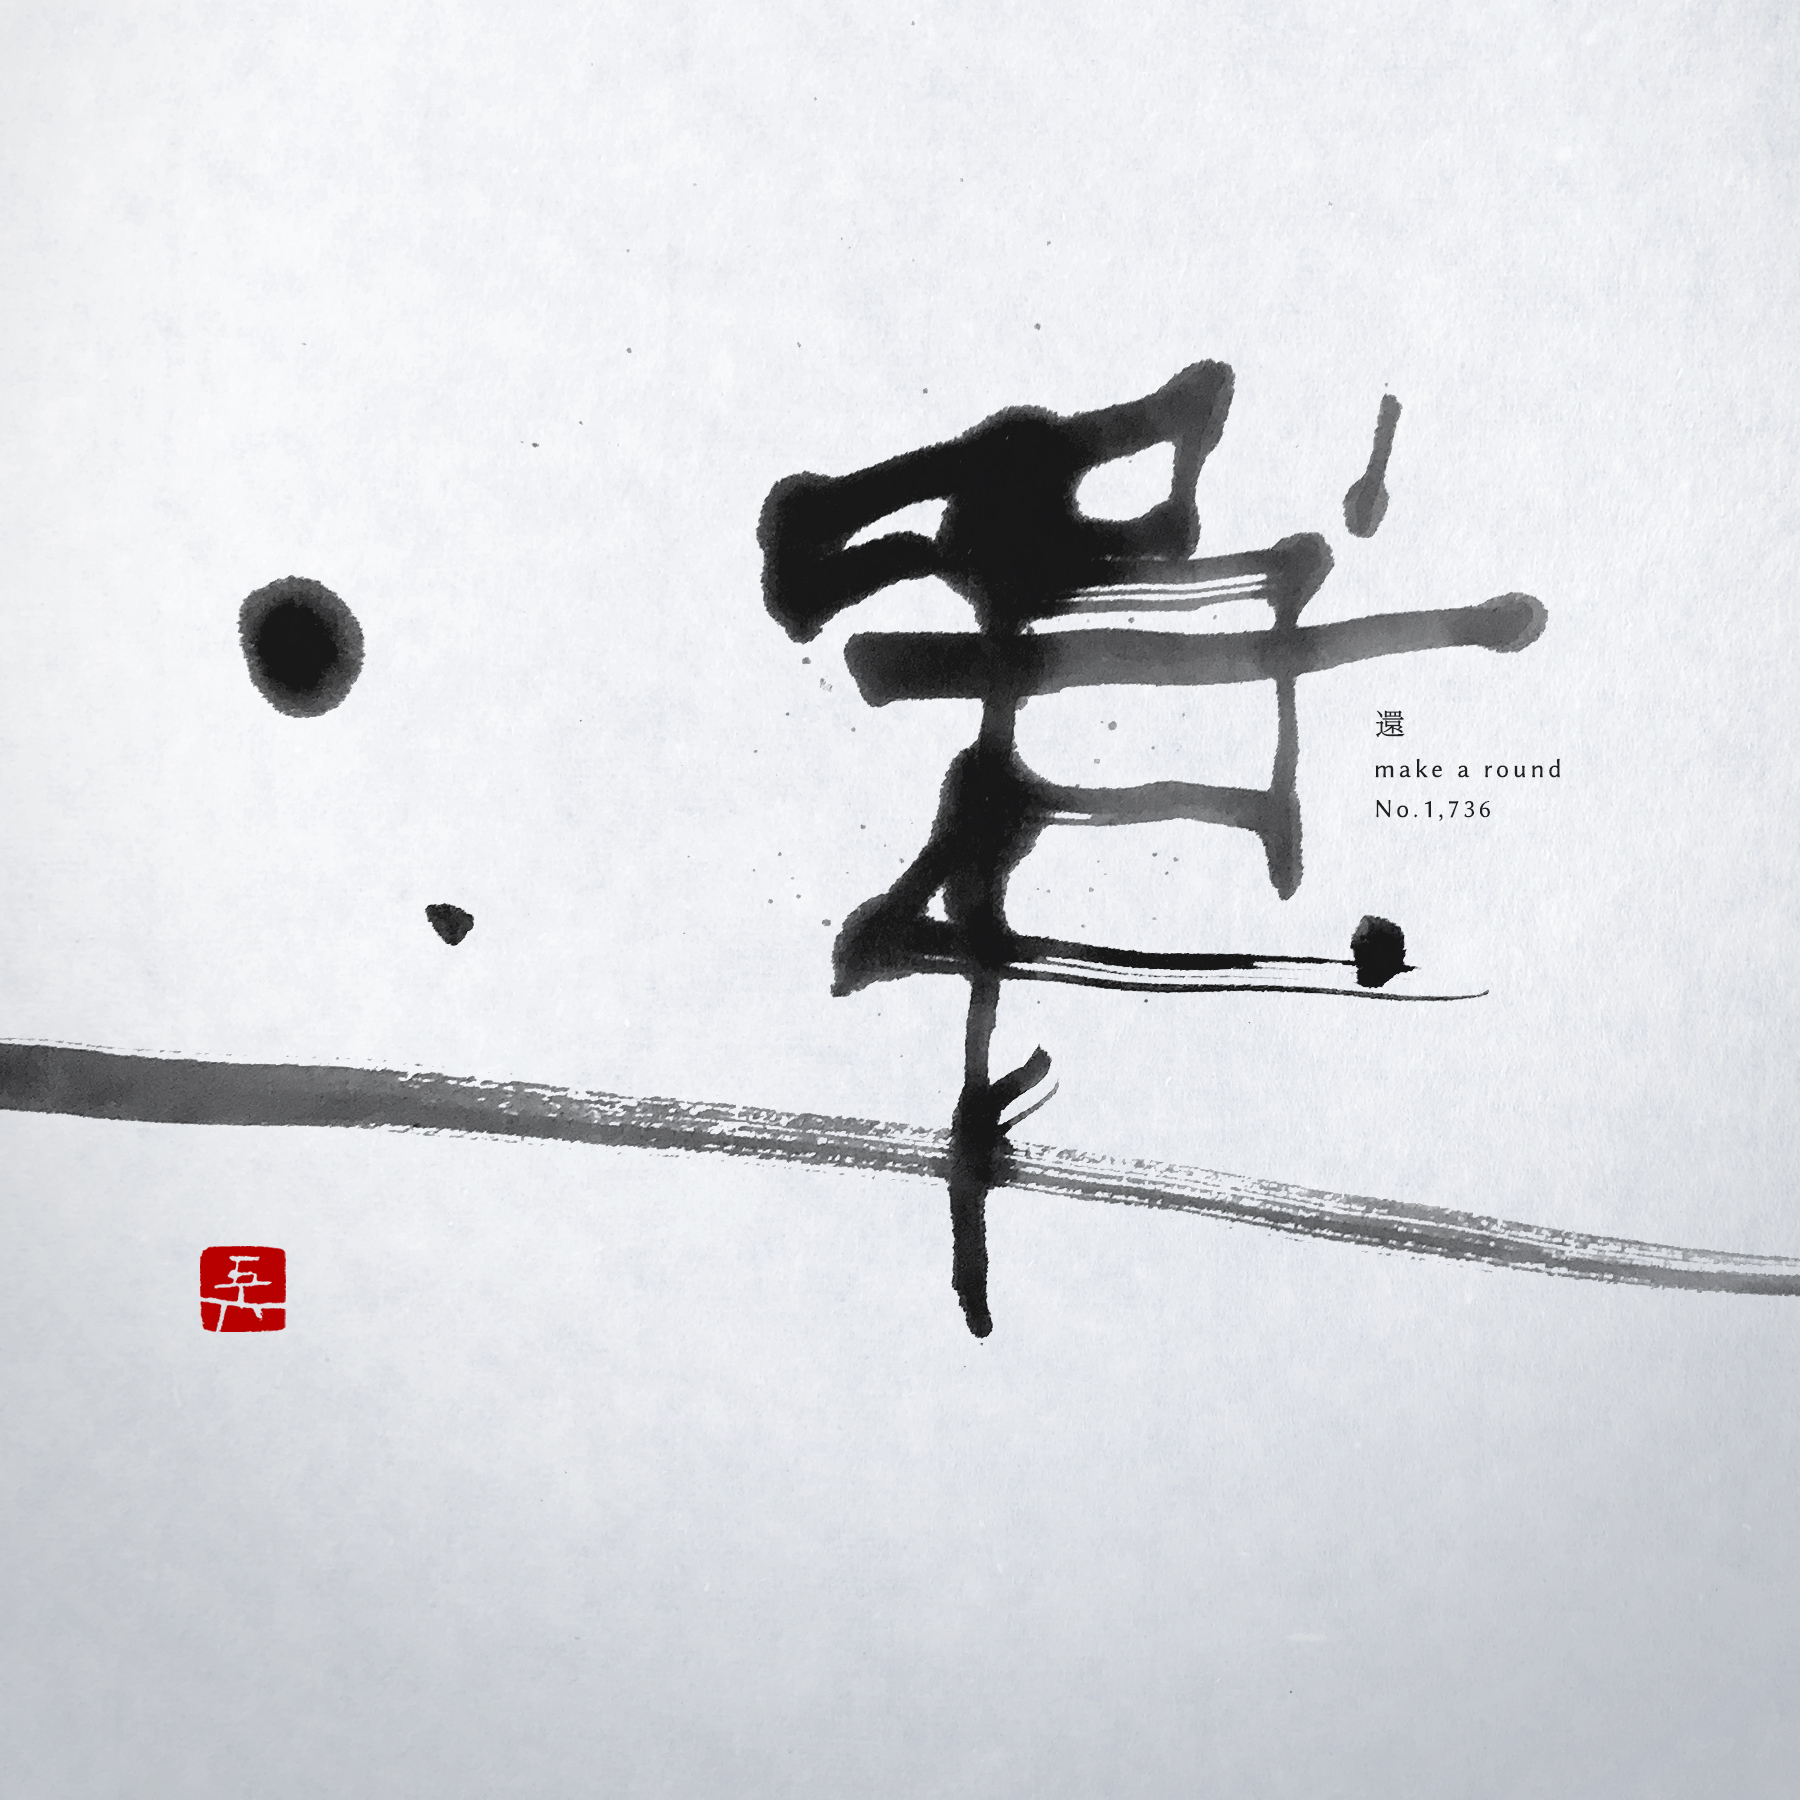 還 | make a round 書道作品 japaneseart japanese calligraphy 書家 田川悟郎 Goroh Tagawa